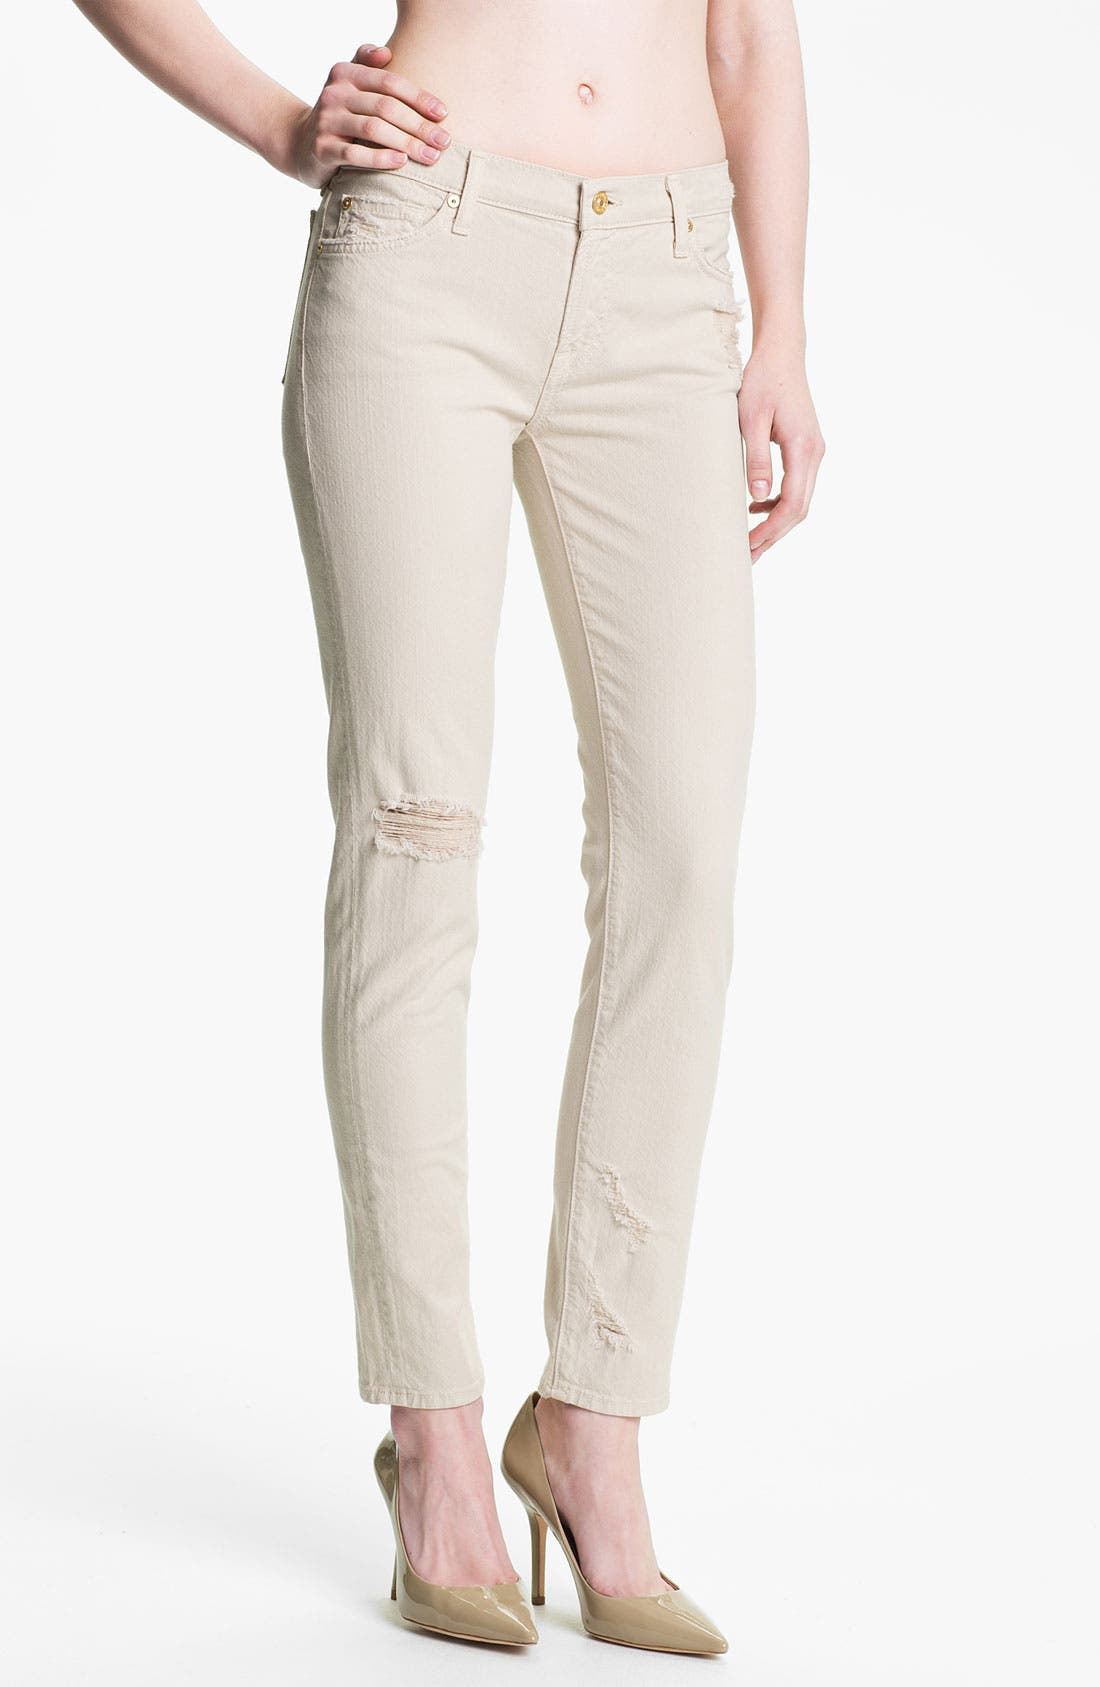 Alternate Image 1 Selected - 7 For All Mankind® 'The Slim Cigarette' Stretch Jeans (Sand Dune)